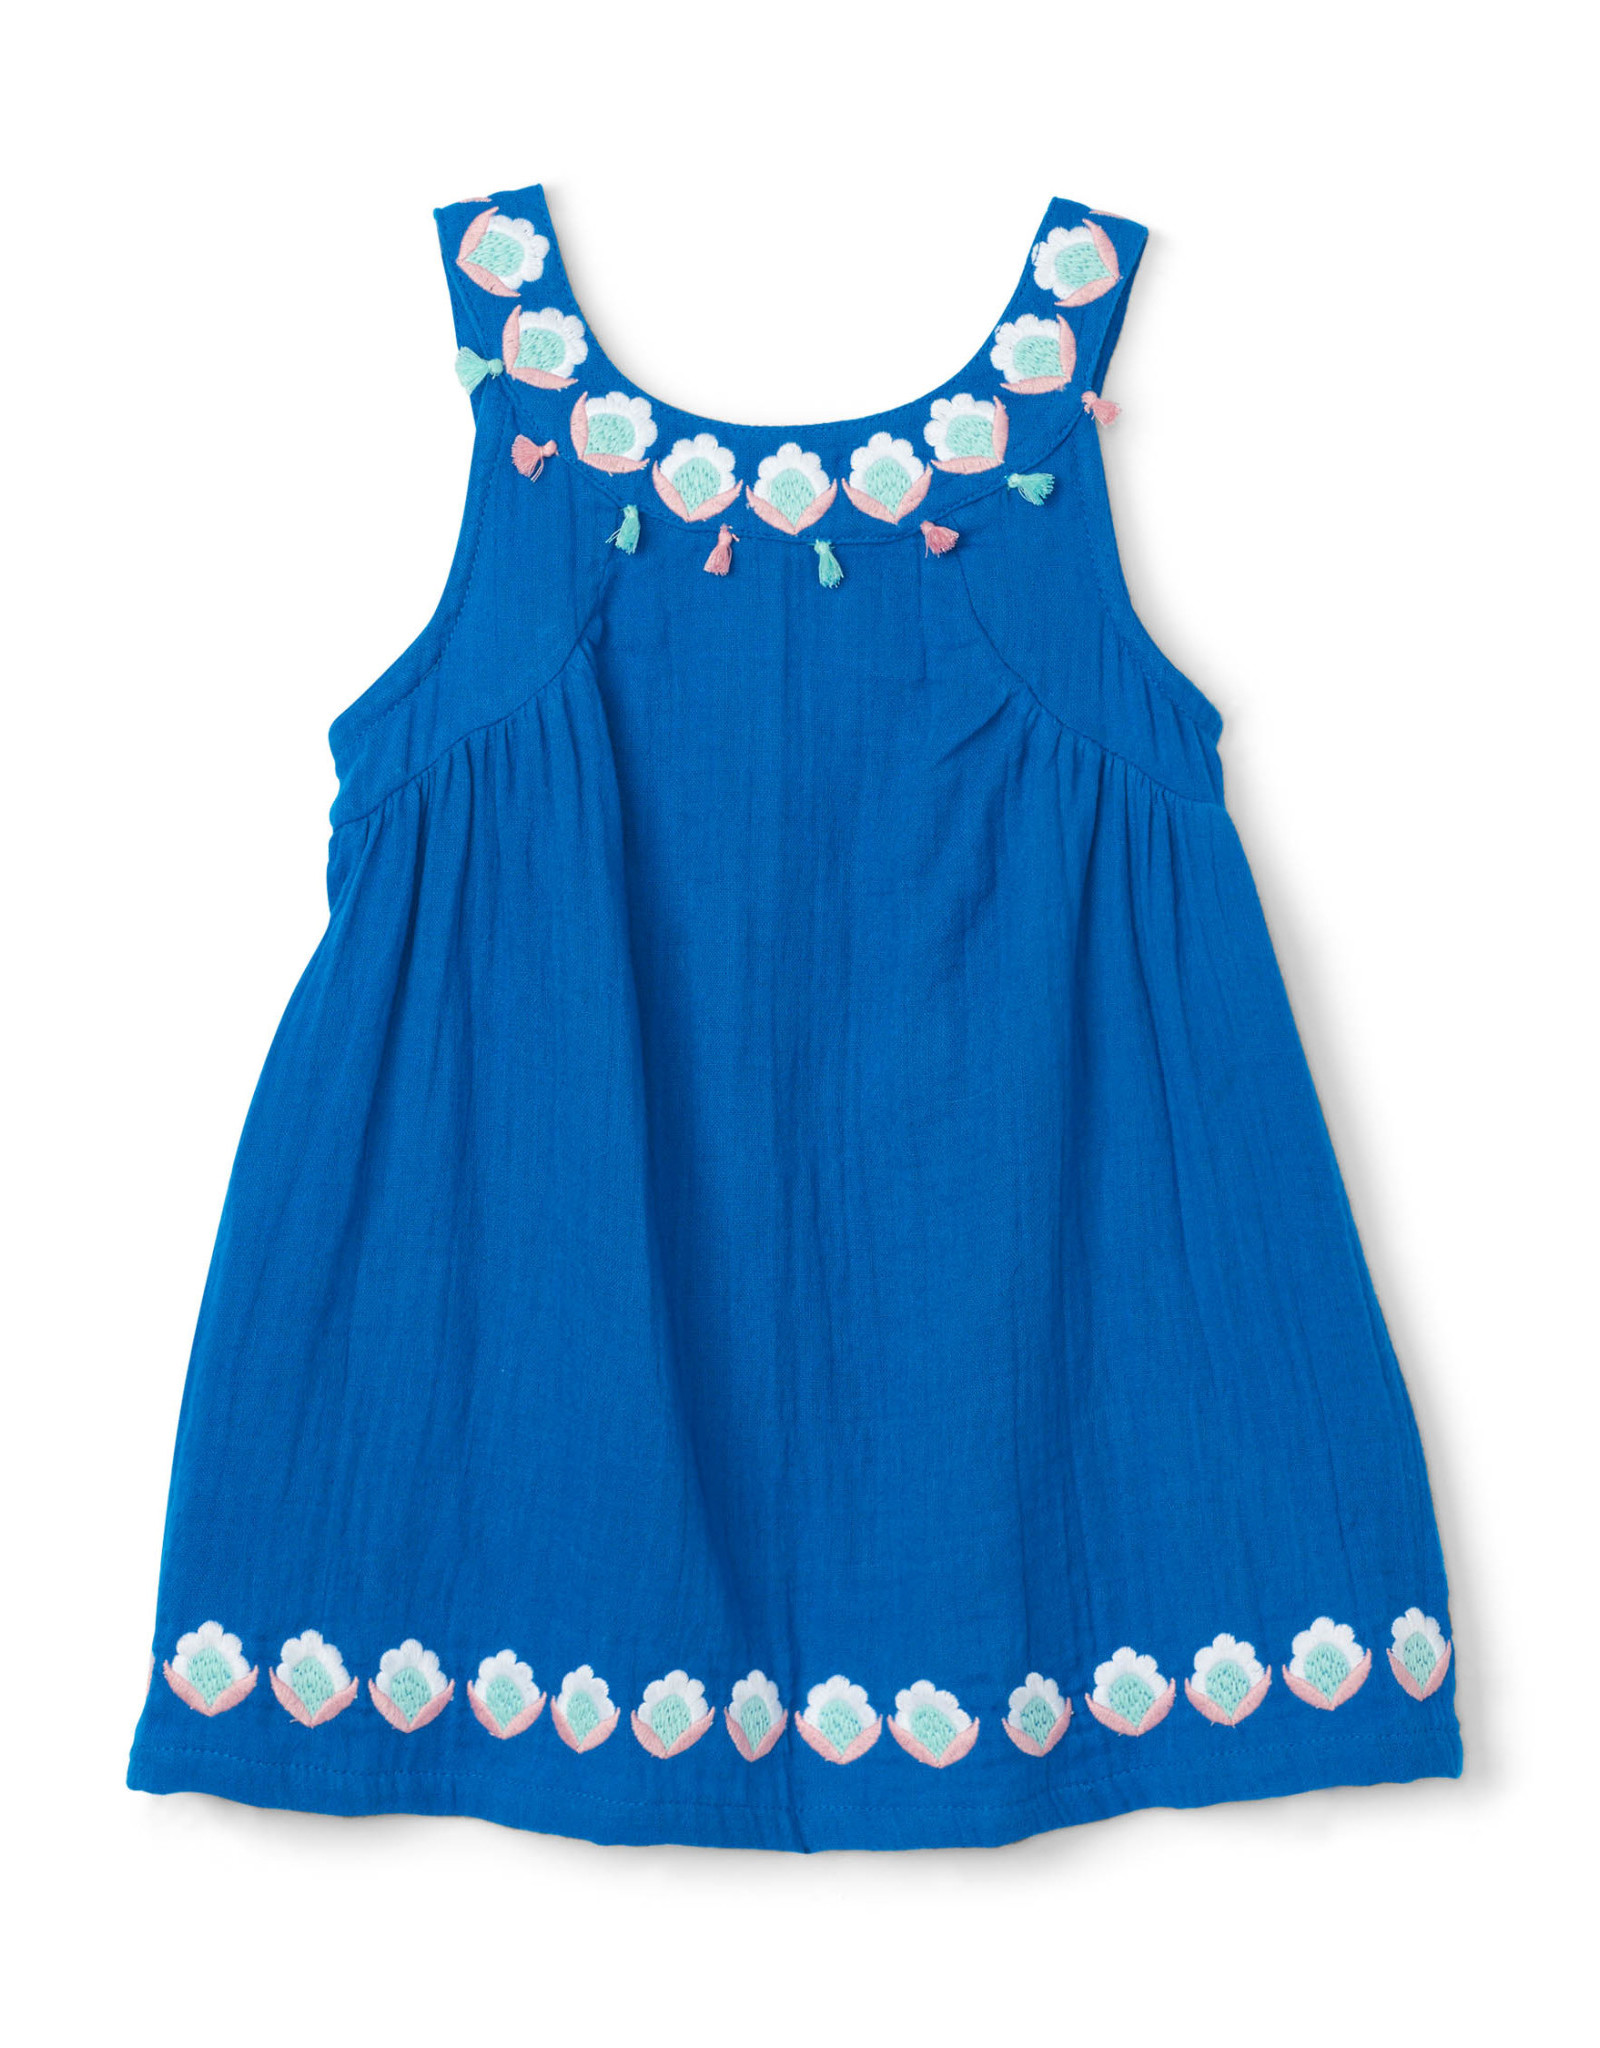 Hatley Floral Shells Baby Gathered Dress